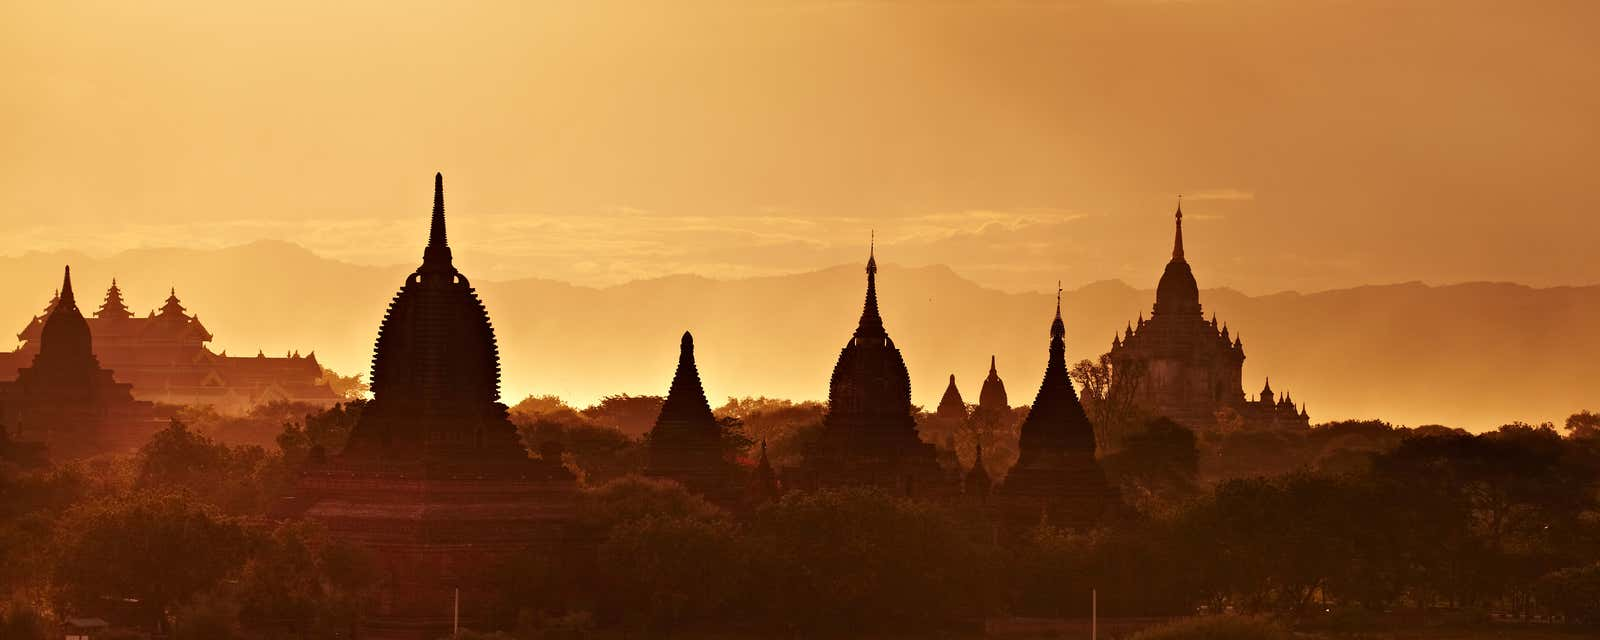 The pagodas of Bagan, Myanmar, silhouetted by the setting sun.